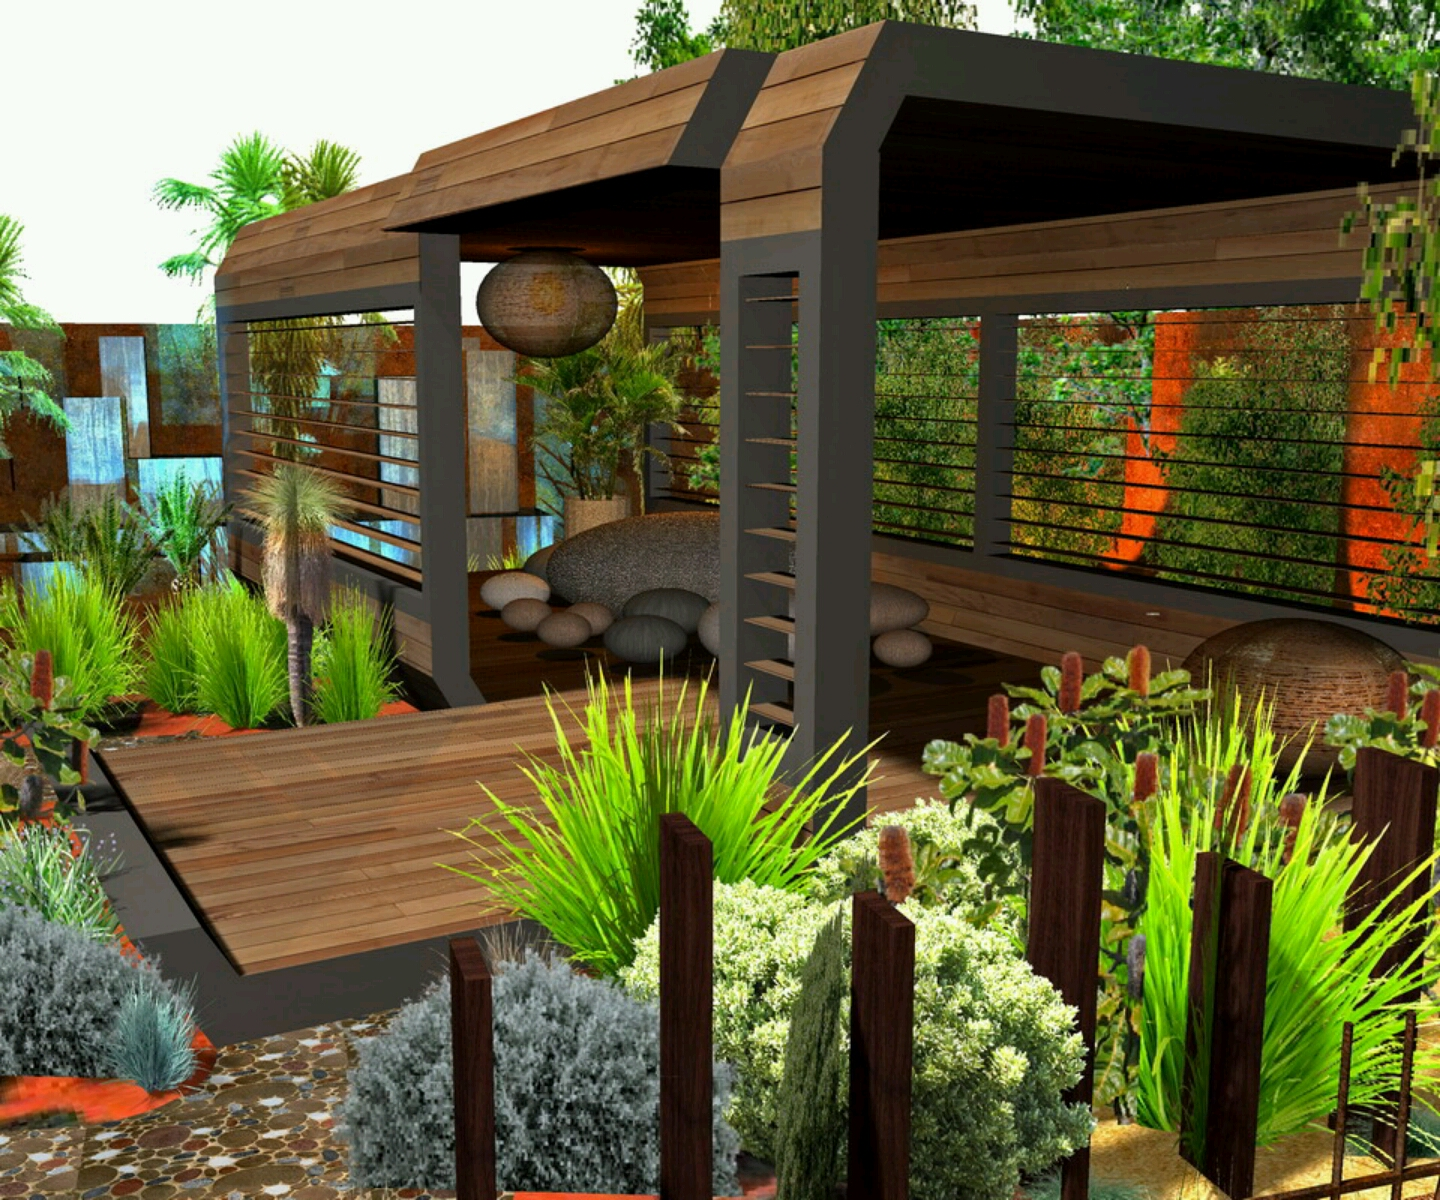 New Home Designs Latest.: Modern Homes Garden Designs Ideas